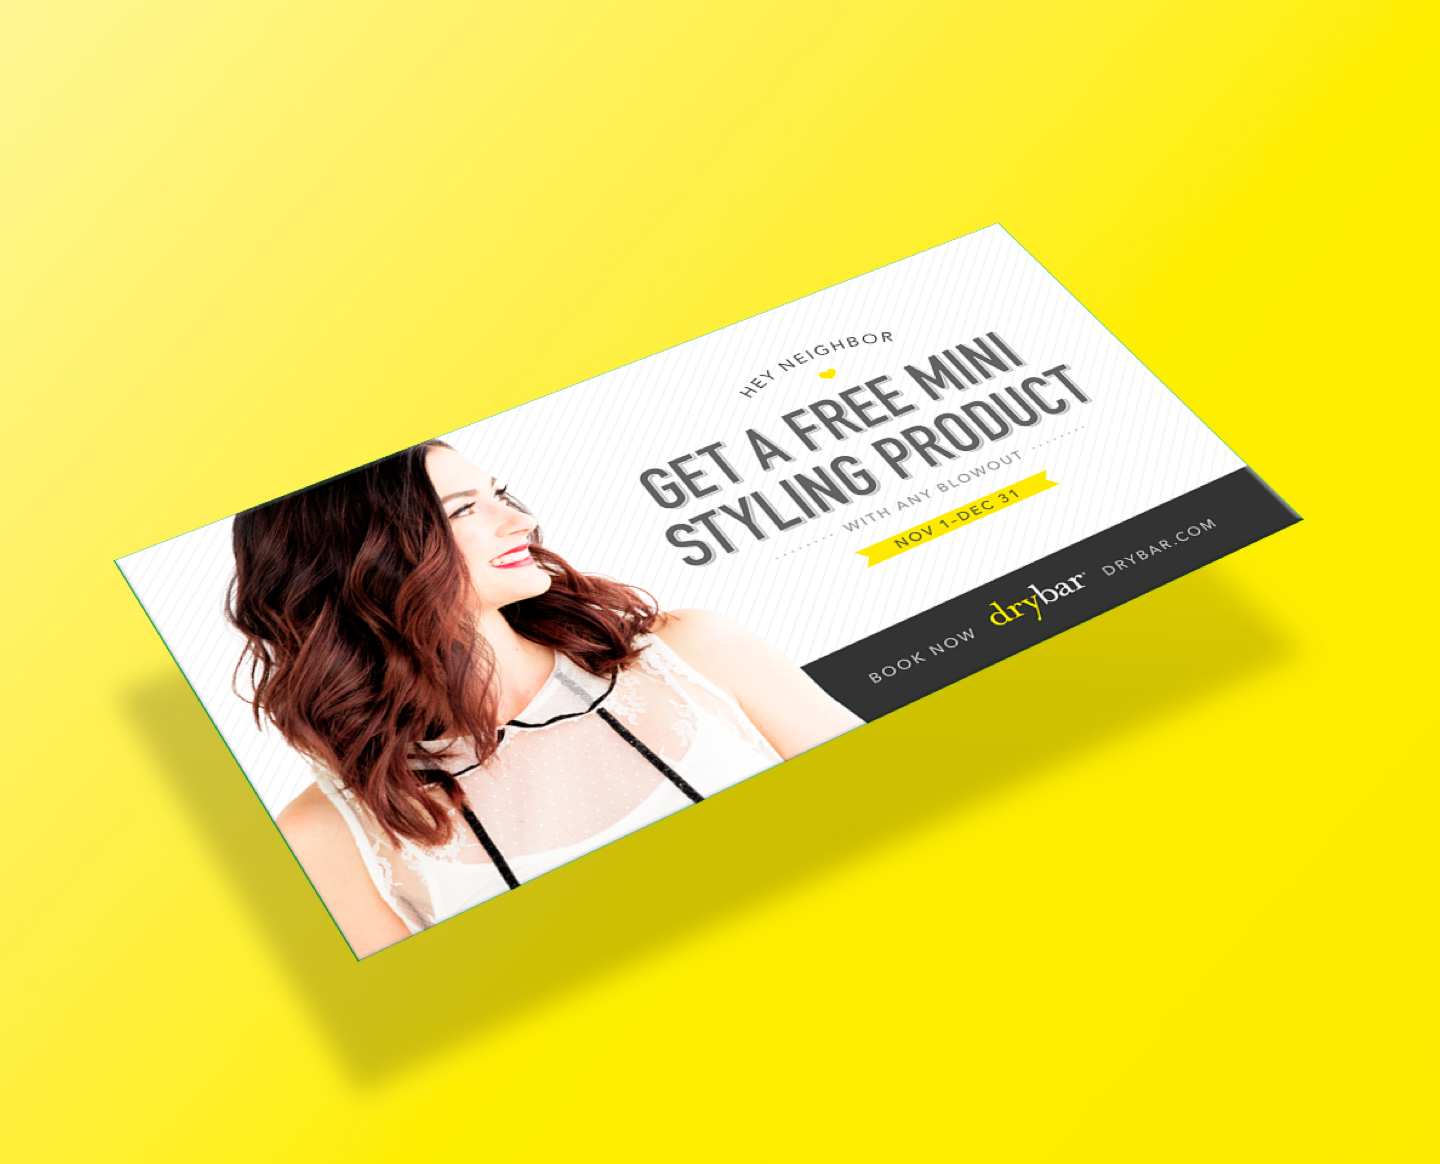 Image of postcard for Drybar advertising discounts